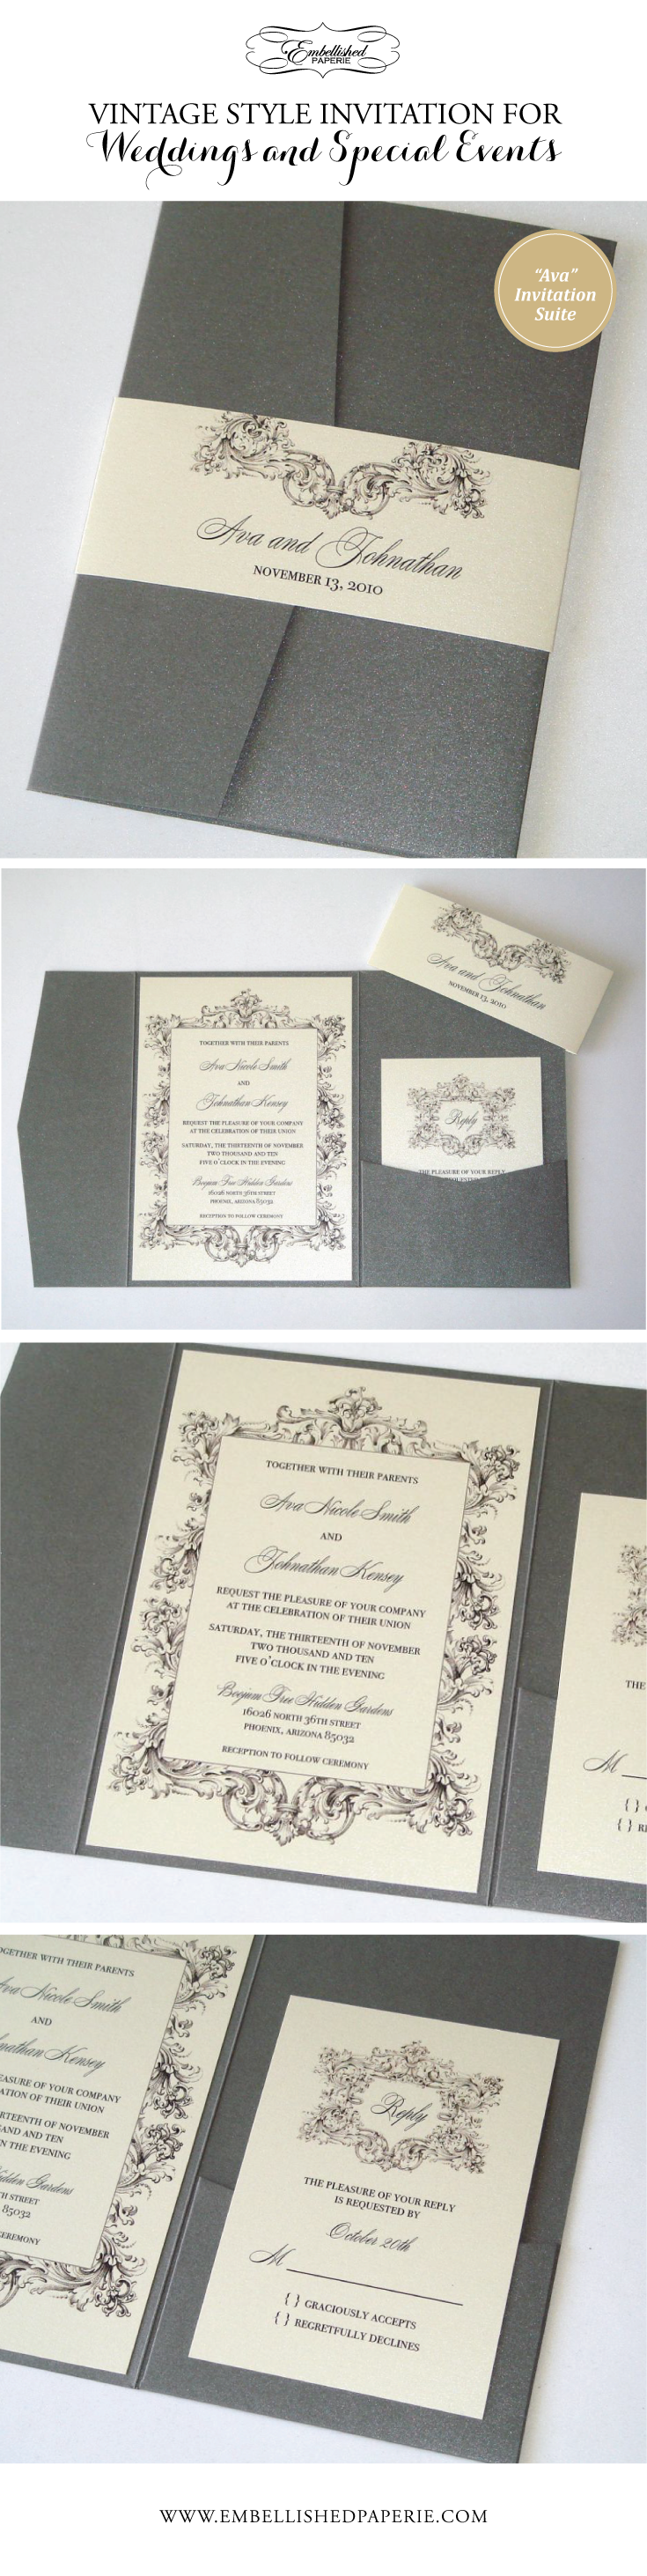 Vintage Wedding Invitation in Pewter Grey and Ivory Pewter Grey